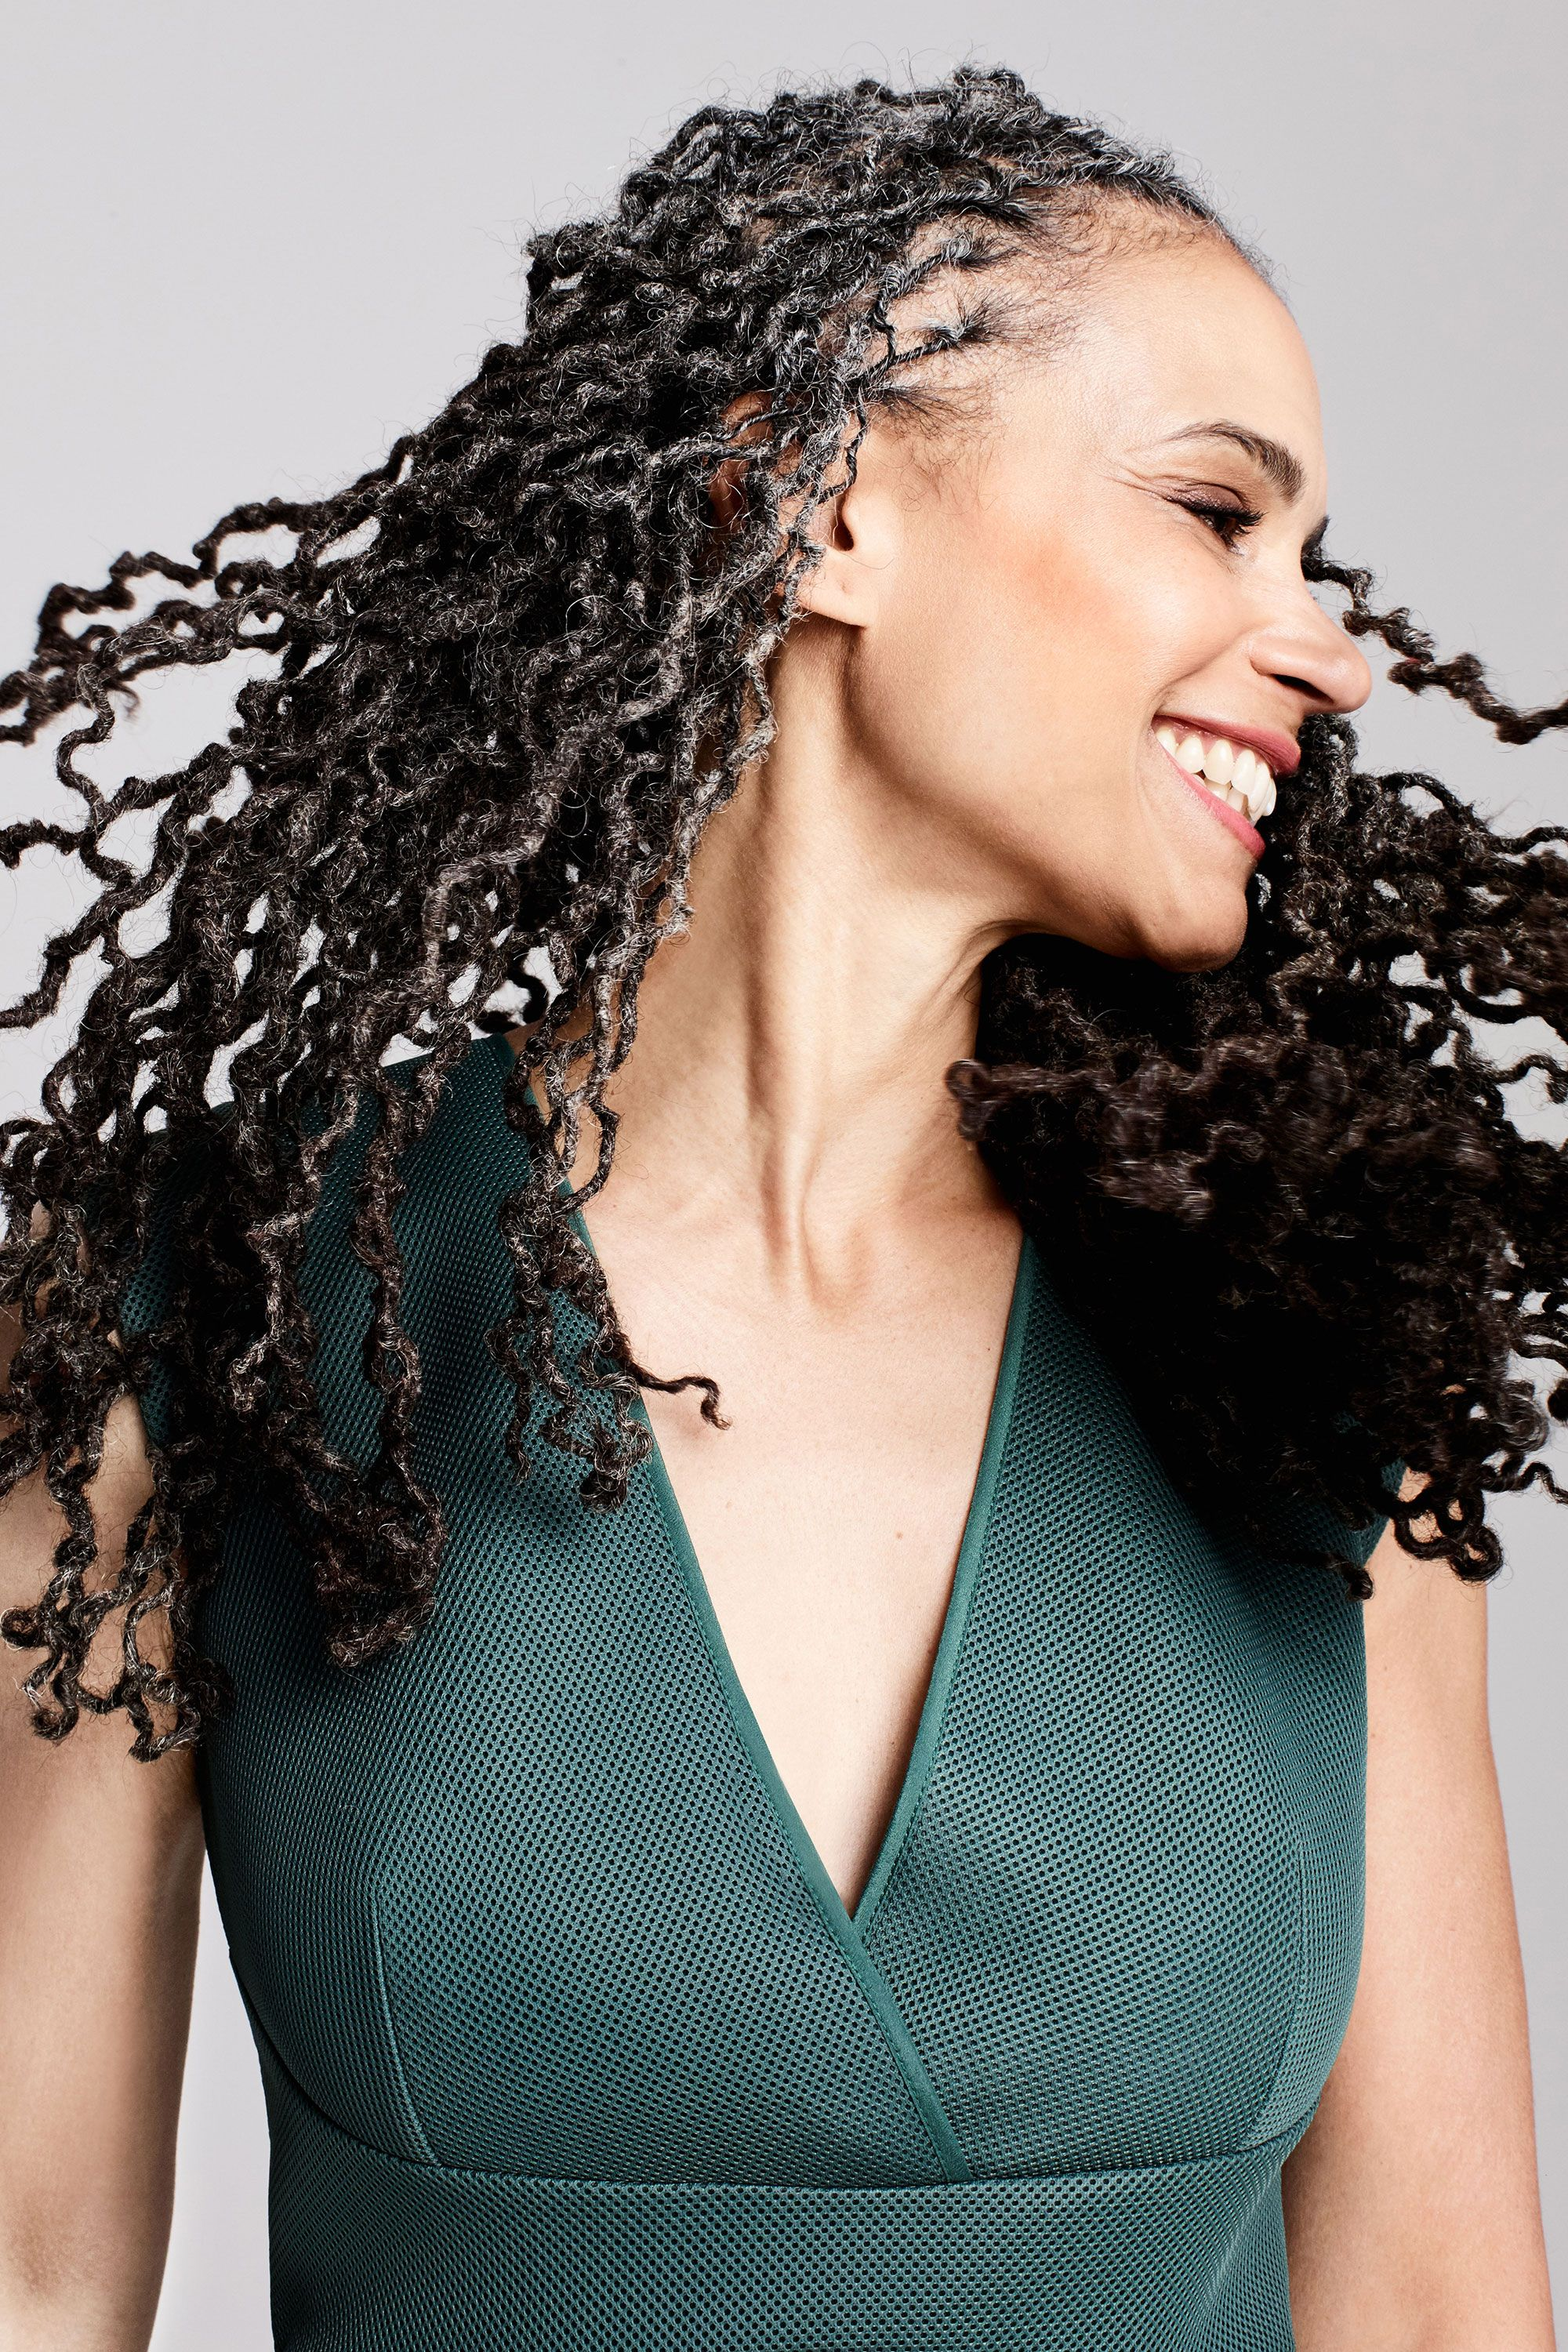 "<p> <strong data-redactor-tag=""strong"" data-verified=""redactor"">Maya Wiley, 53, founder of the </strong><a href=""https://www.centerforsocialinclusion.org/"" target=""_blank"" data-tracking-id=""recirc-text-link""><strong data-redactor-tag=""strong"" data-verified=""redactor"">Center for Social Inclusion</strong></a><span class=""redactor-invisible-space"" data-verified=""redactor"" data-redactor-tag=""span"" data-redactor-class=""redactor-invisible-space""></span><br></p><p>""At this age, I am privileged to be able to reflect and act at the same time. I have a quarter century of experience behind me that helps me tackle challenges. I face the future with bravery, knowing now that transformation and change is a longer-than-lifetime process. I have a considered, deep confidence — that's the magic of the 50s."" <span data-redactor-tag=""span"" data-verified=""redactor""></span></p><p><em data-redactor-tag=""em"" data-verified=""redactor""><strong data-redactor-tag=""strong"" data-verified=""redactor"">Wardrobe:</strong> <a href=""https://www.reiss.com/us/p/textured-scuba-fit-and-flare-dress-womens-riviera-in-fern/"" target=""_blank"" data-tracking-id=""recirc-text-link"">Riviera Dress</a>, REISS, $295</em></p>"